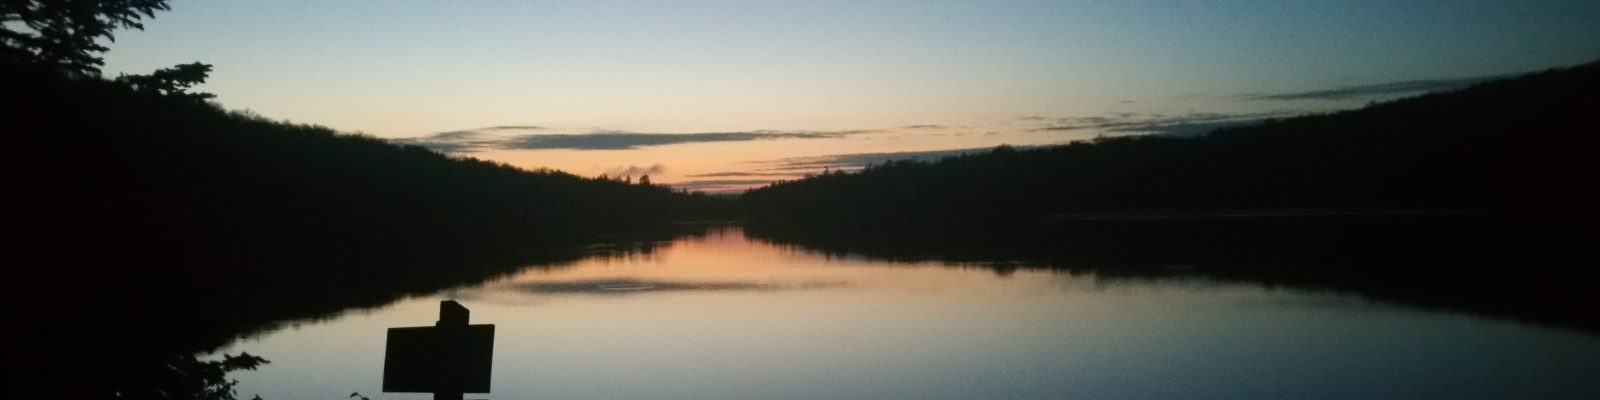 Stratton Pond at sunset